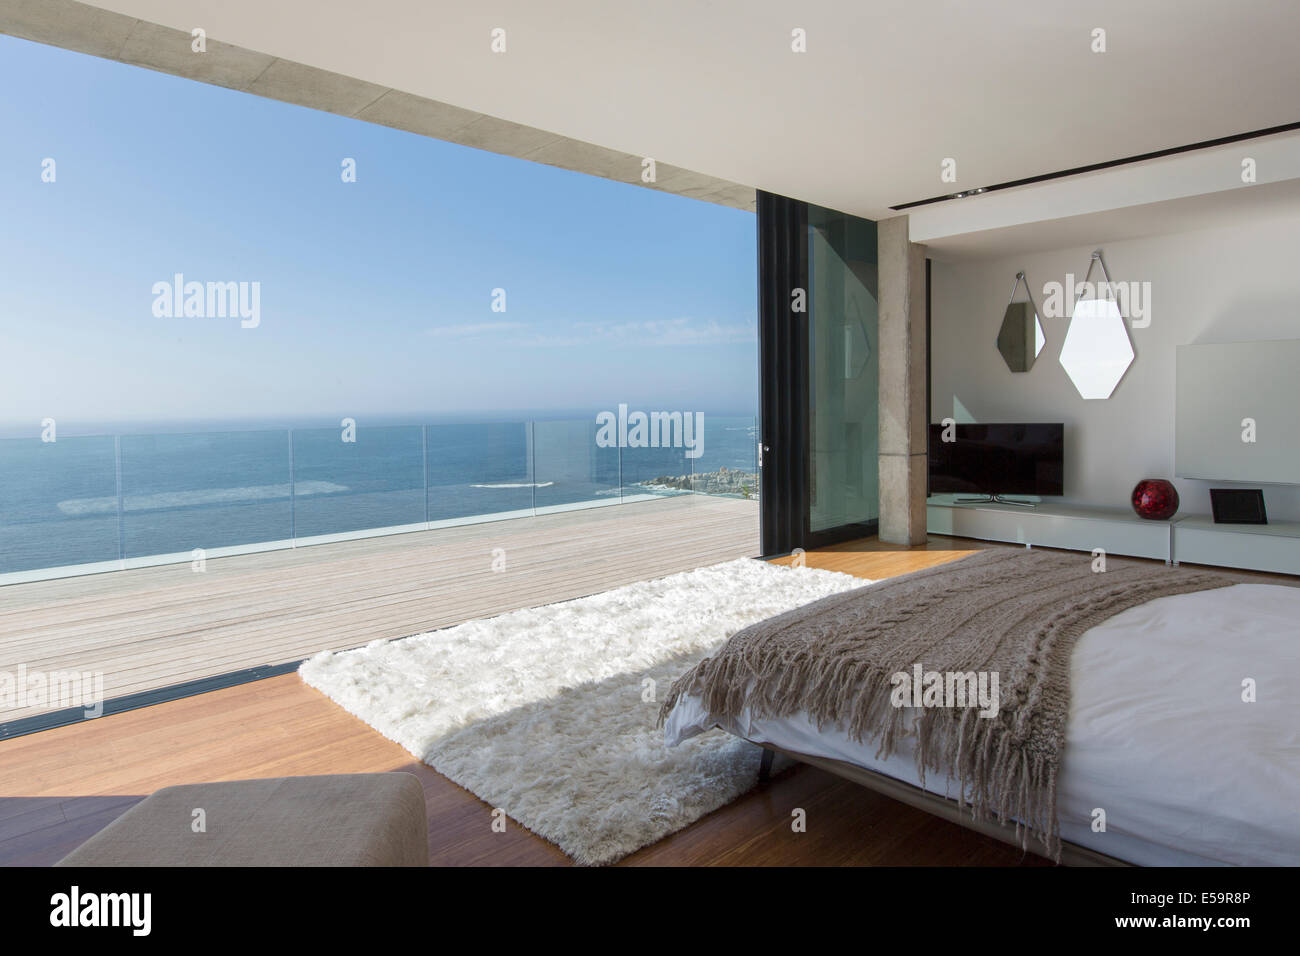 Modern bedroom overlooking ocean - Stock Image